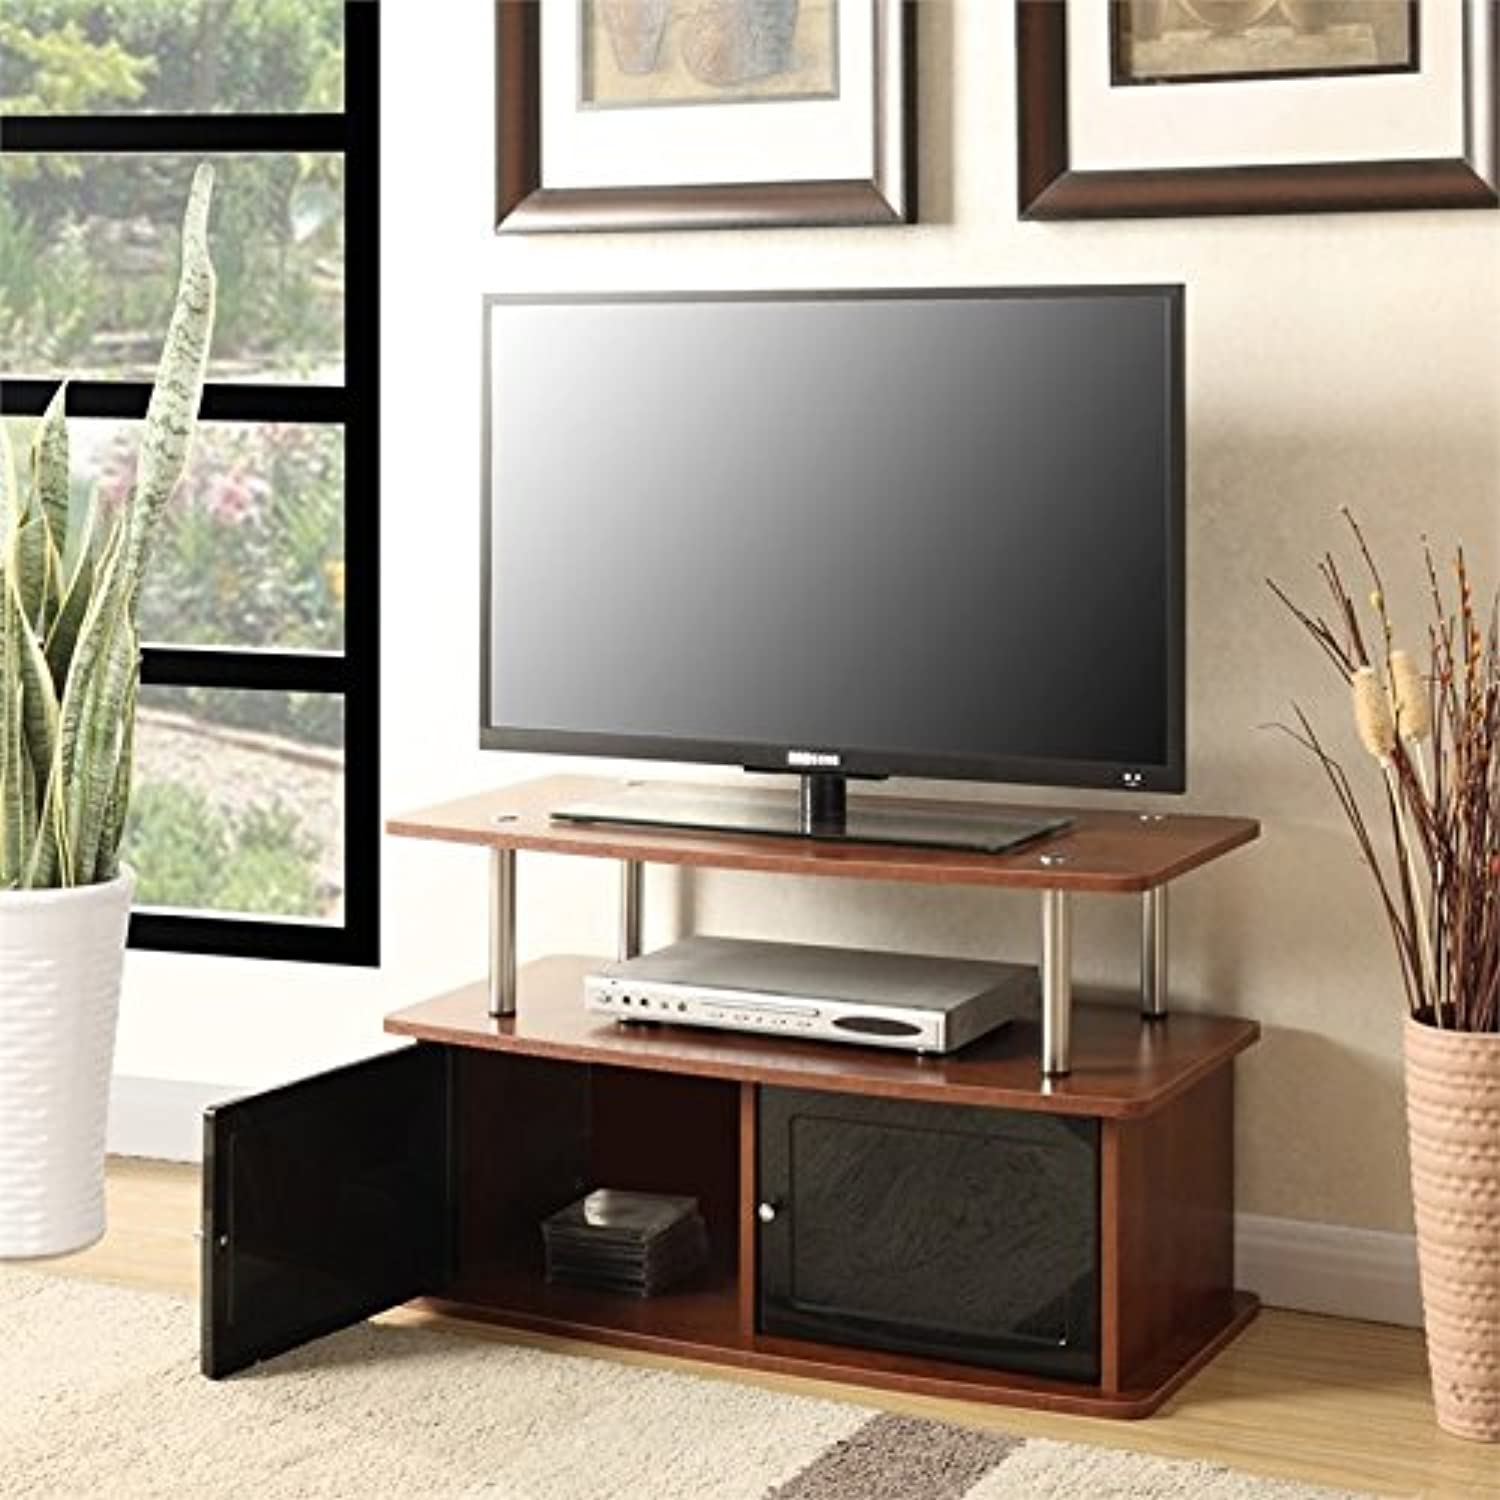 Pemberly Row 36  TV Stand in Cherry